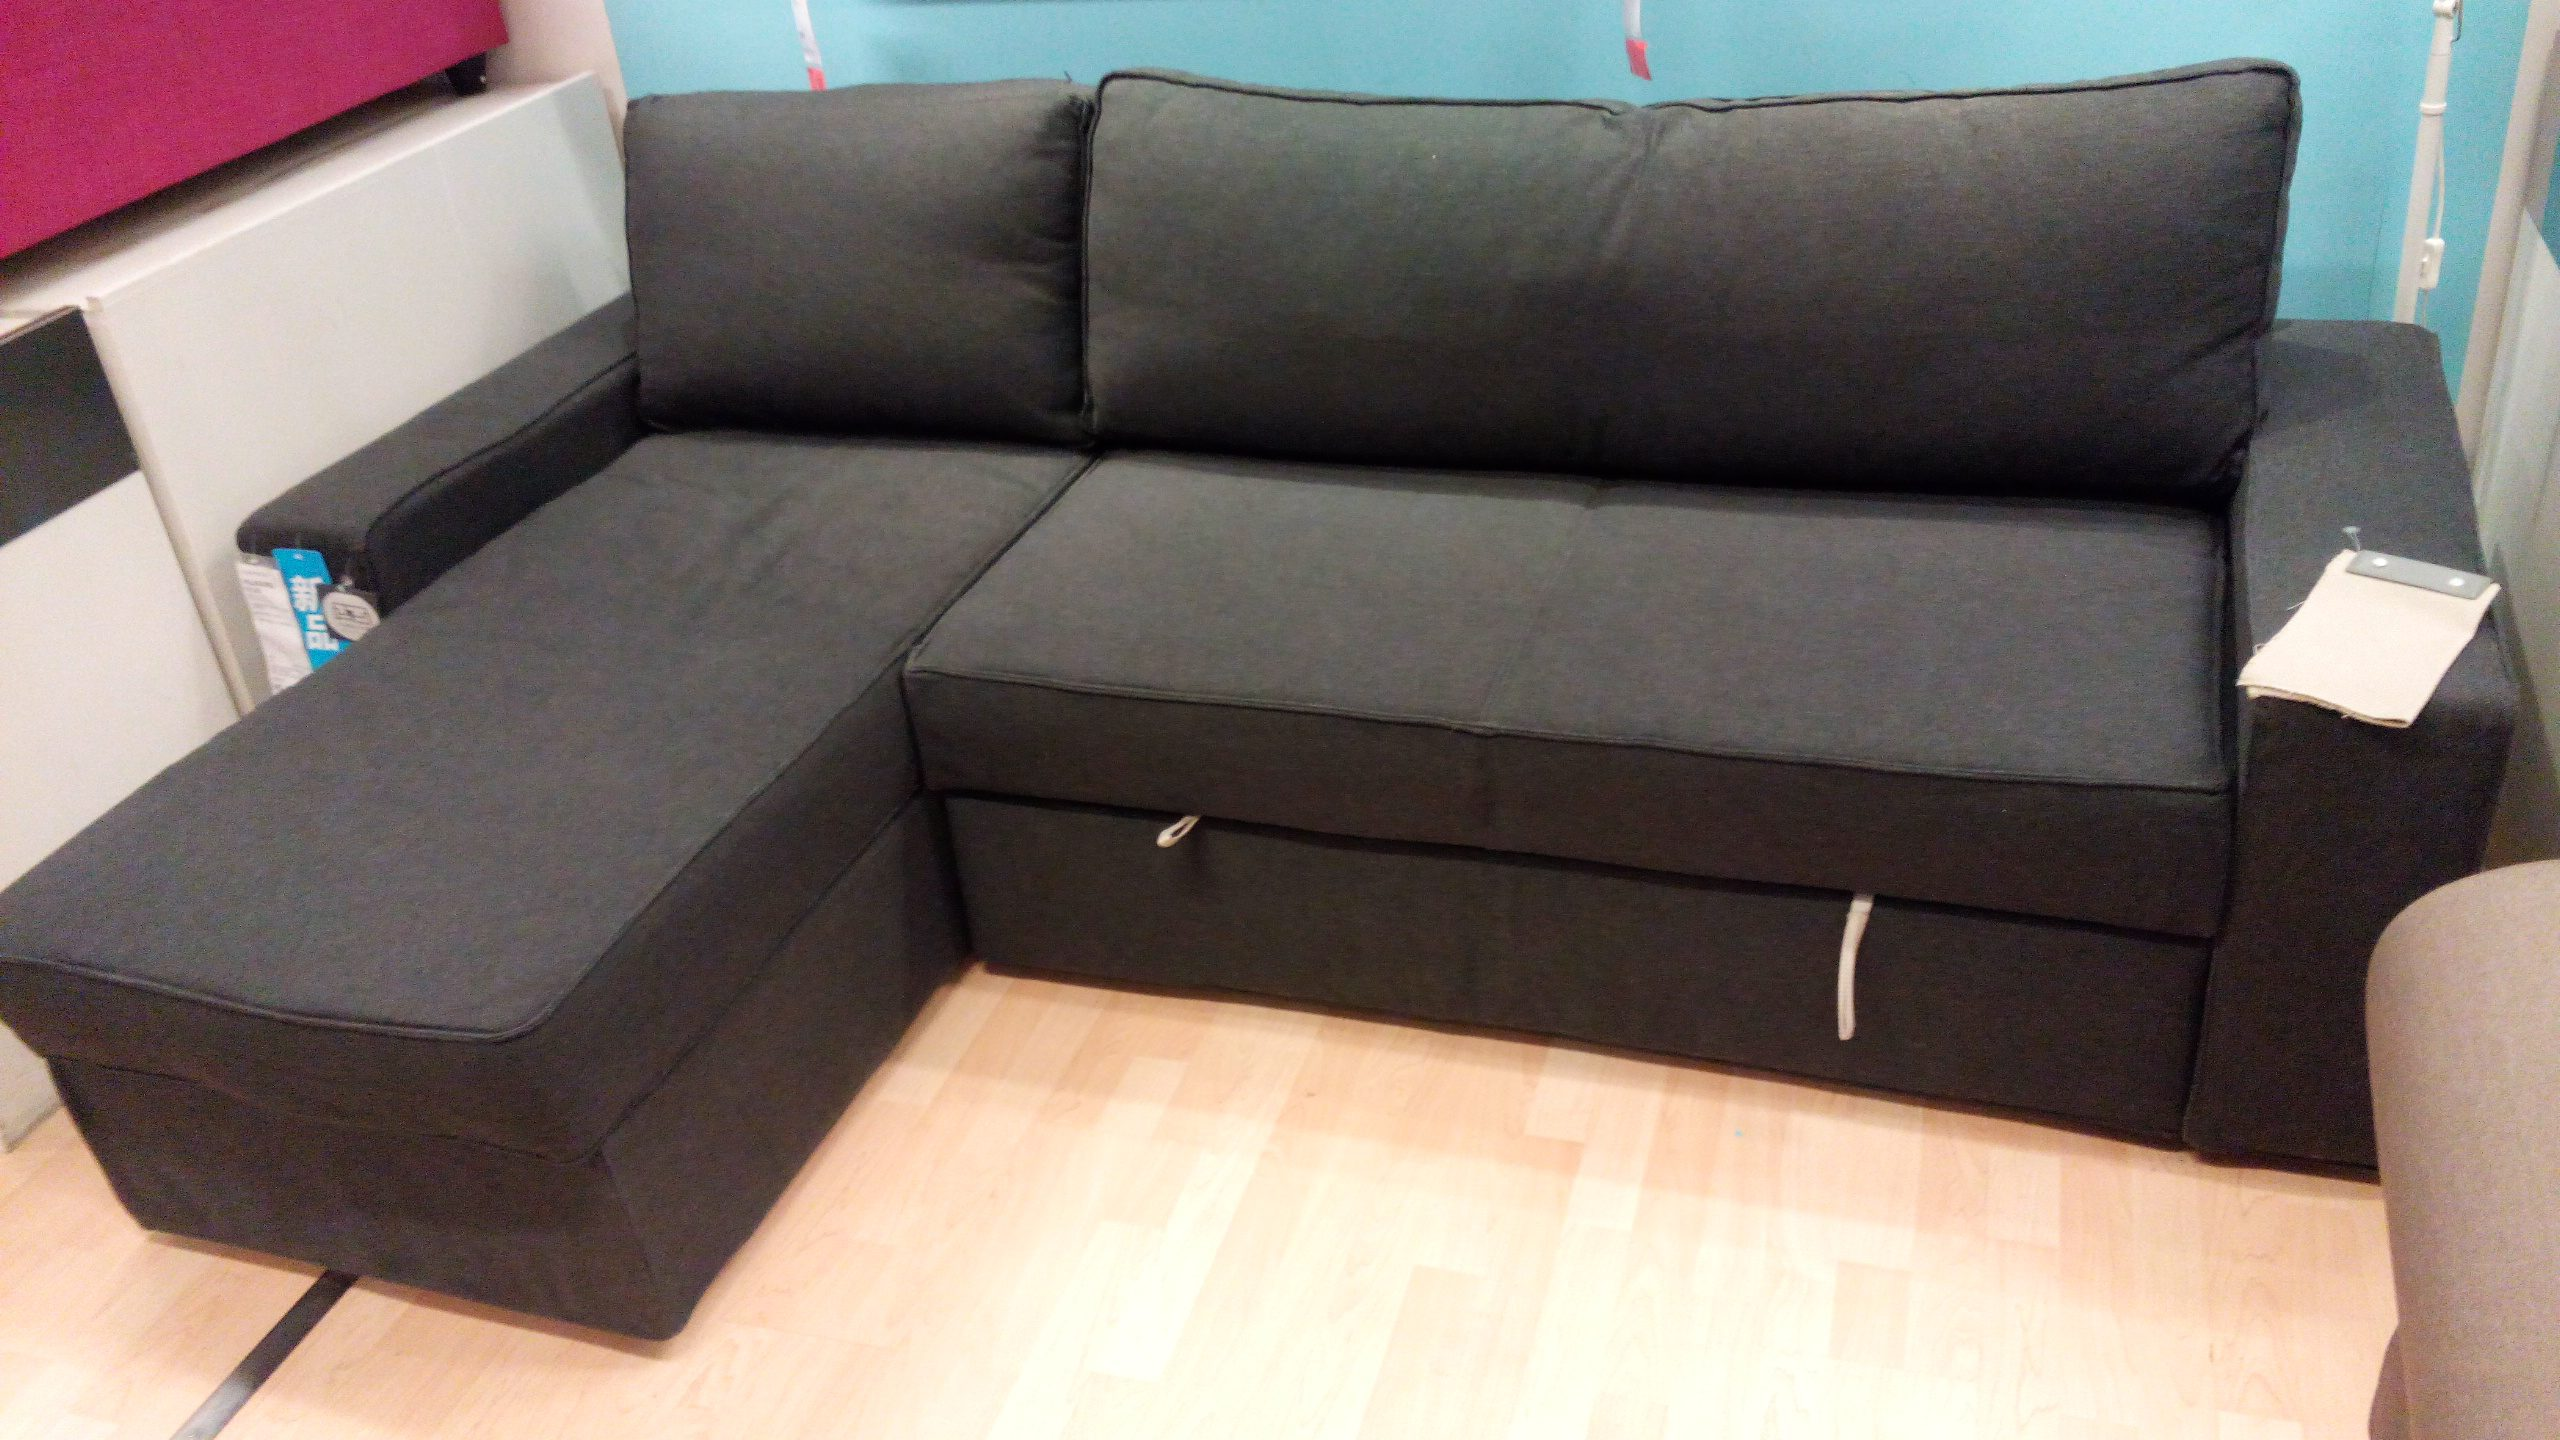 Bettsofa Florida Ikea Vilasund And Backabro Review Return Of The Sofa Bed Clones